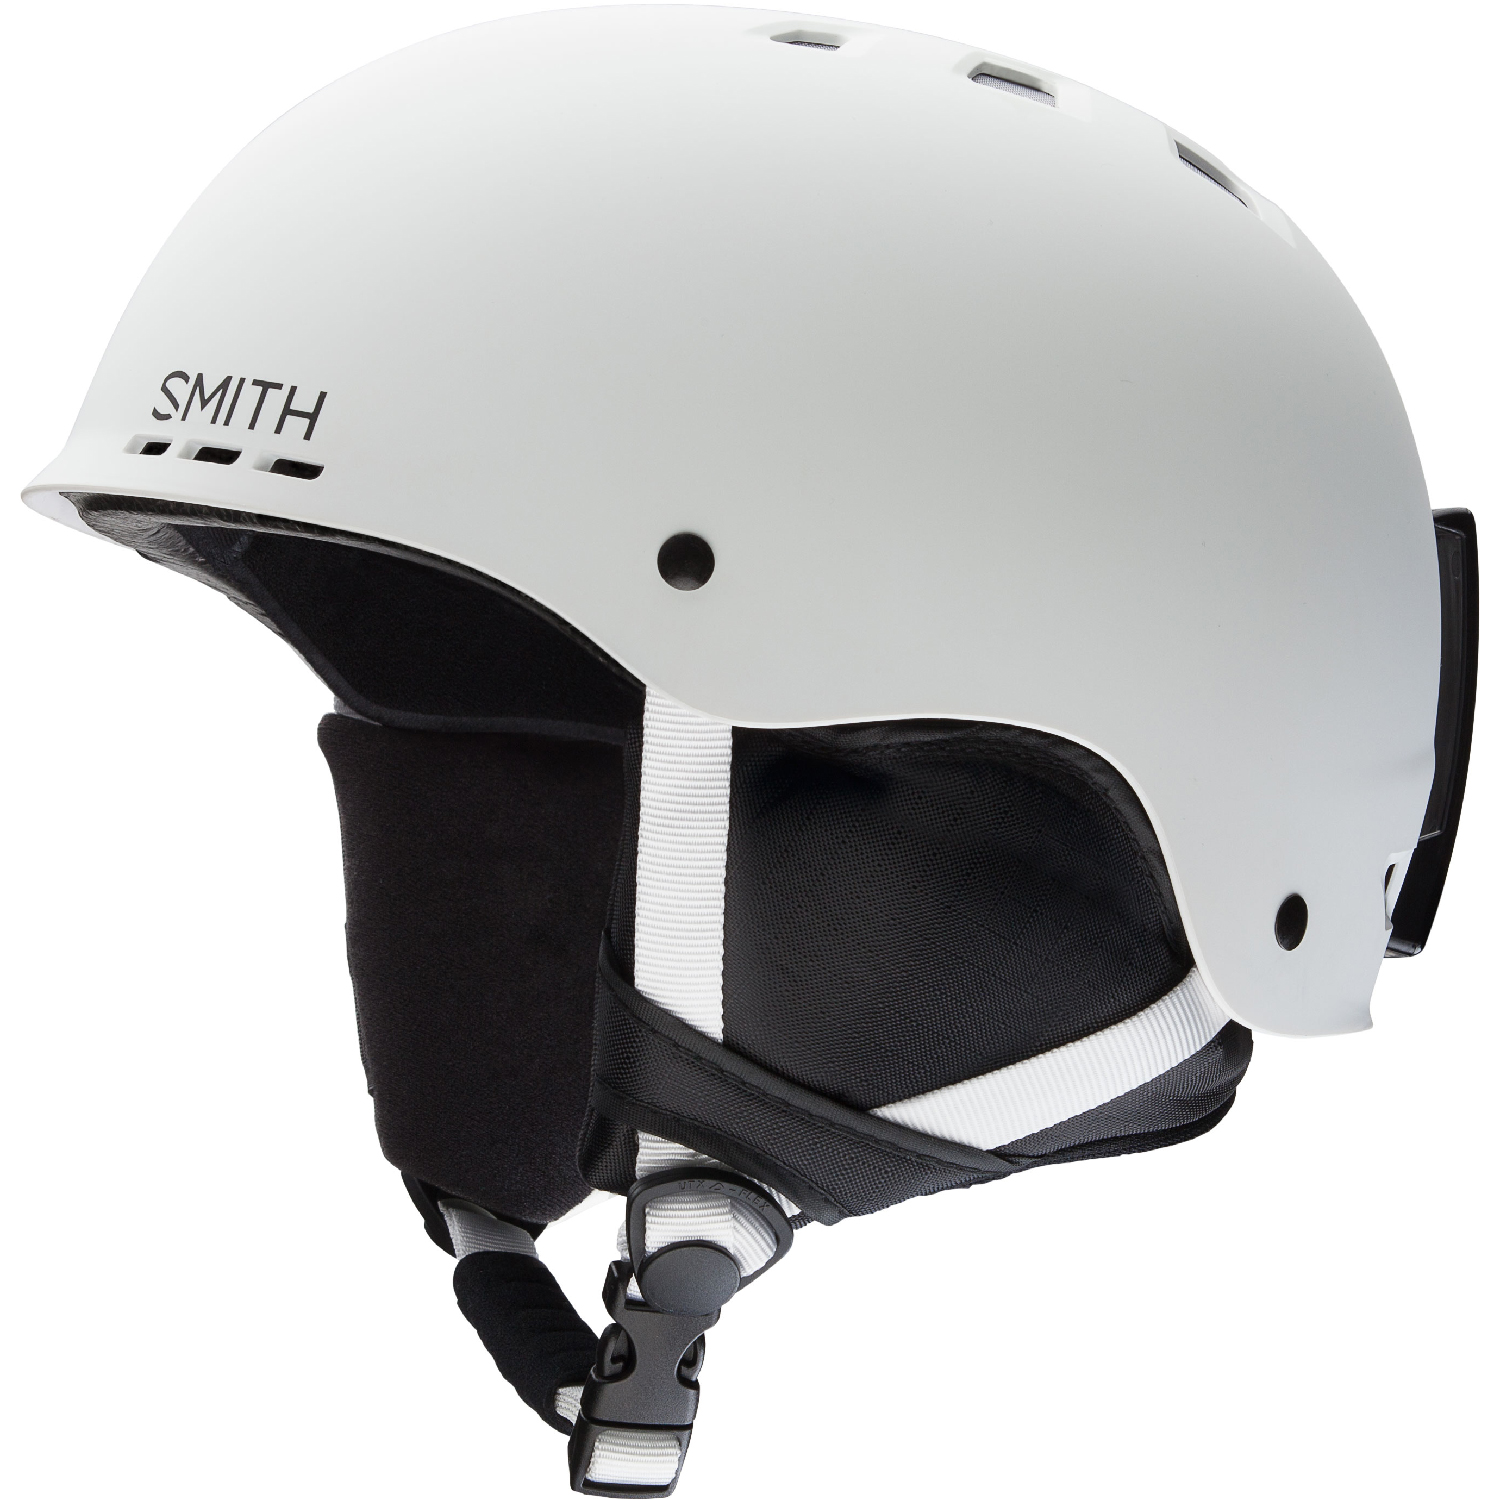 Smith Optics 2019 Holt (Matte White) Snowboard  Helmet  support wholesale retail